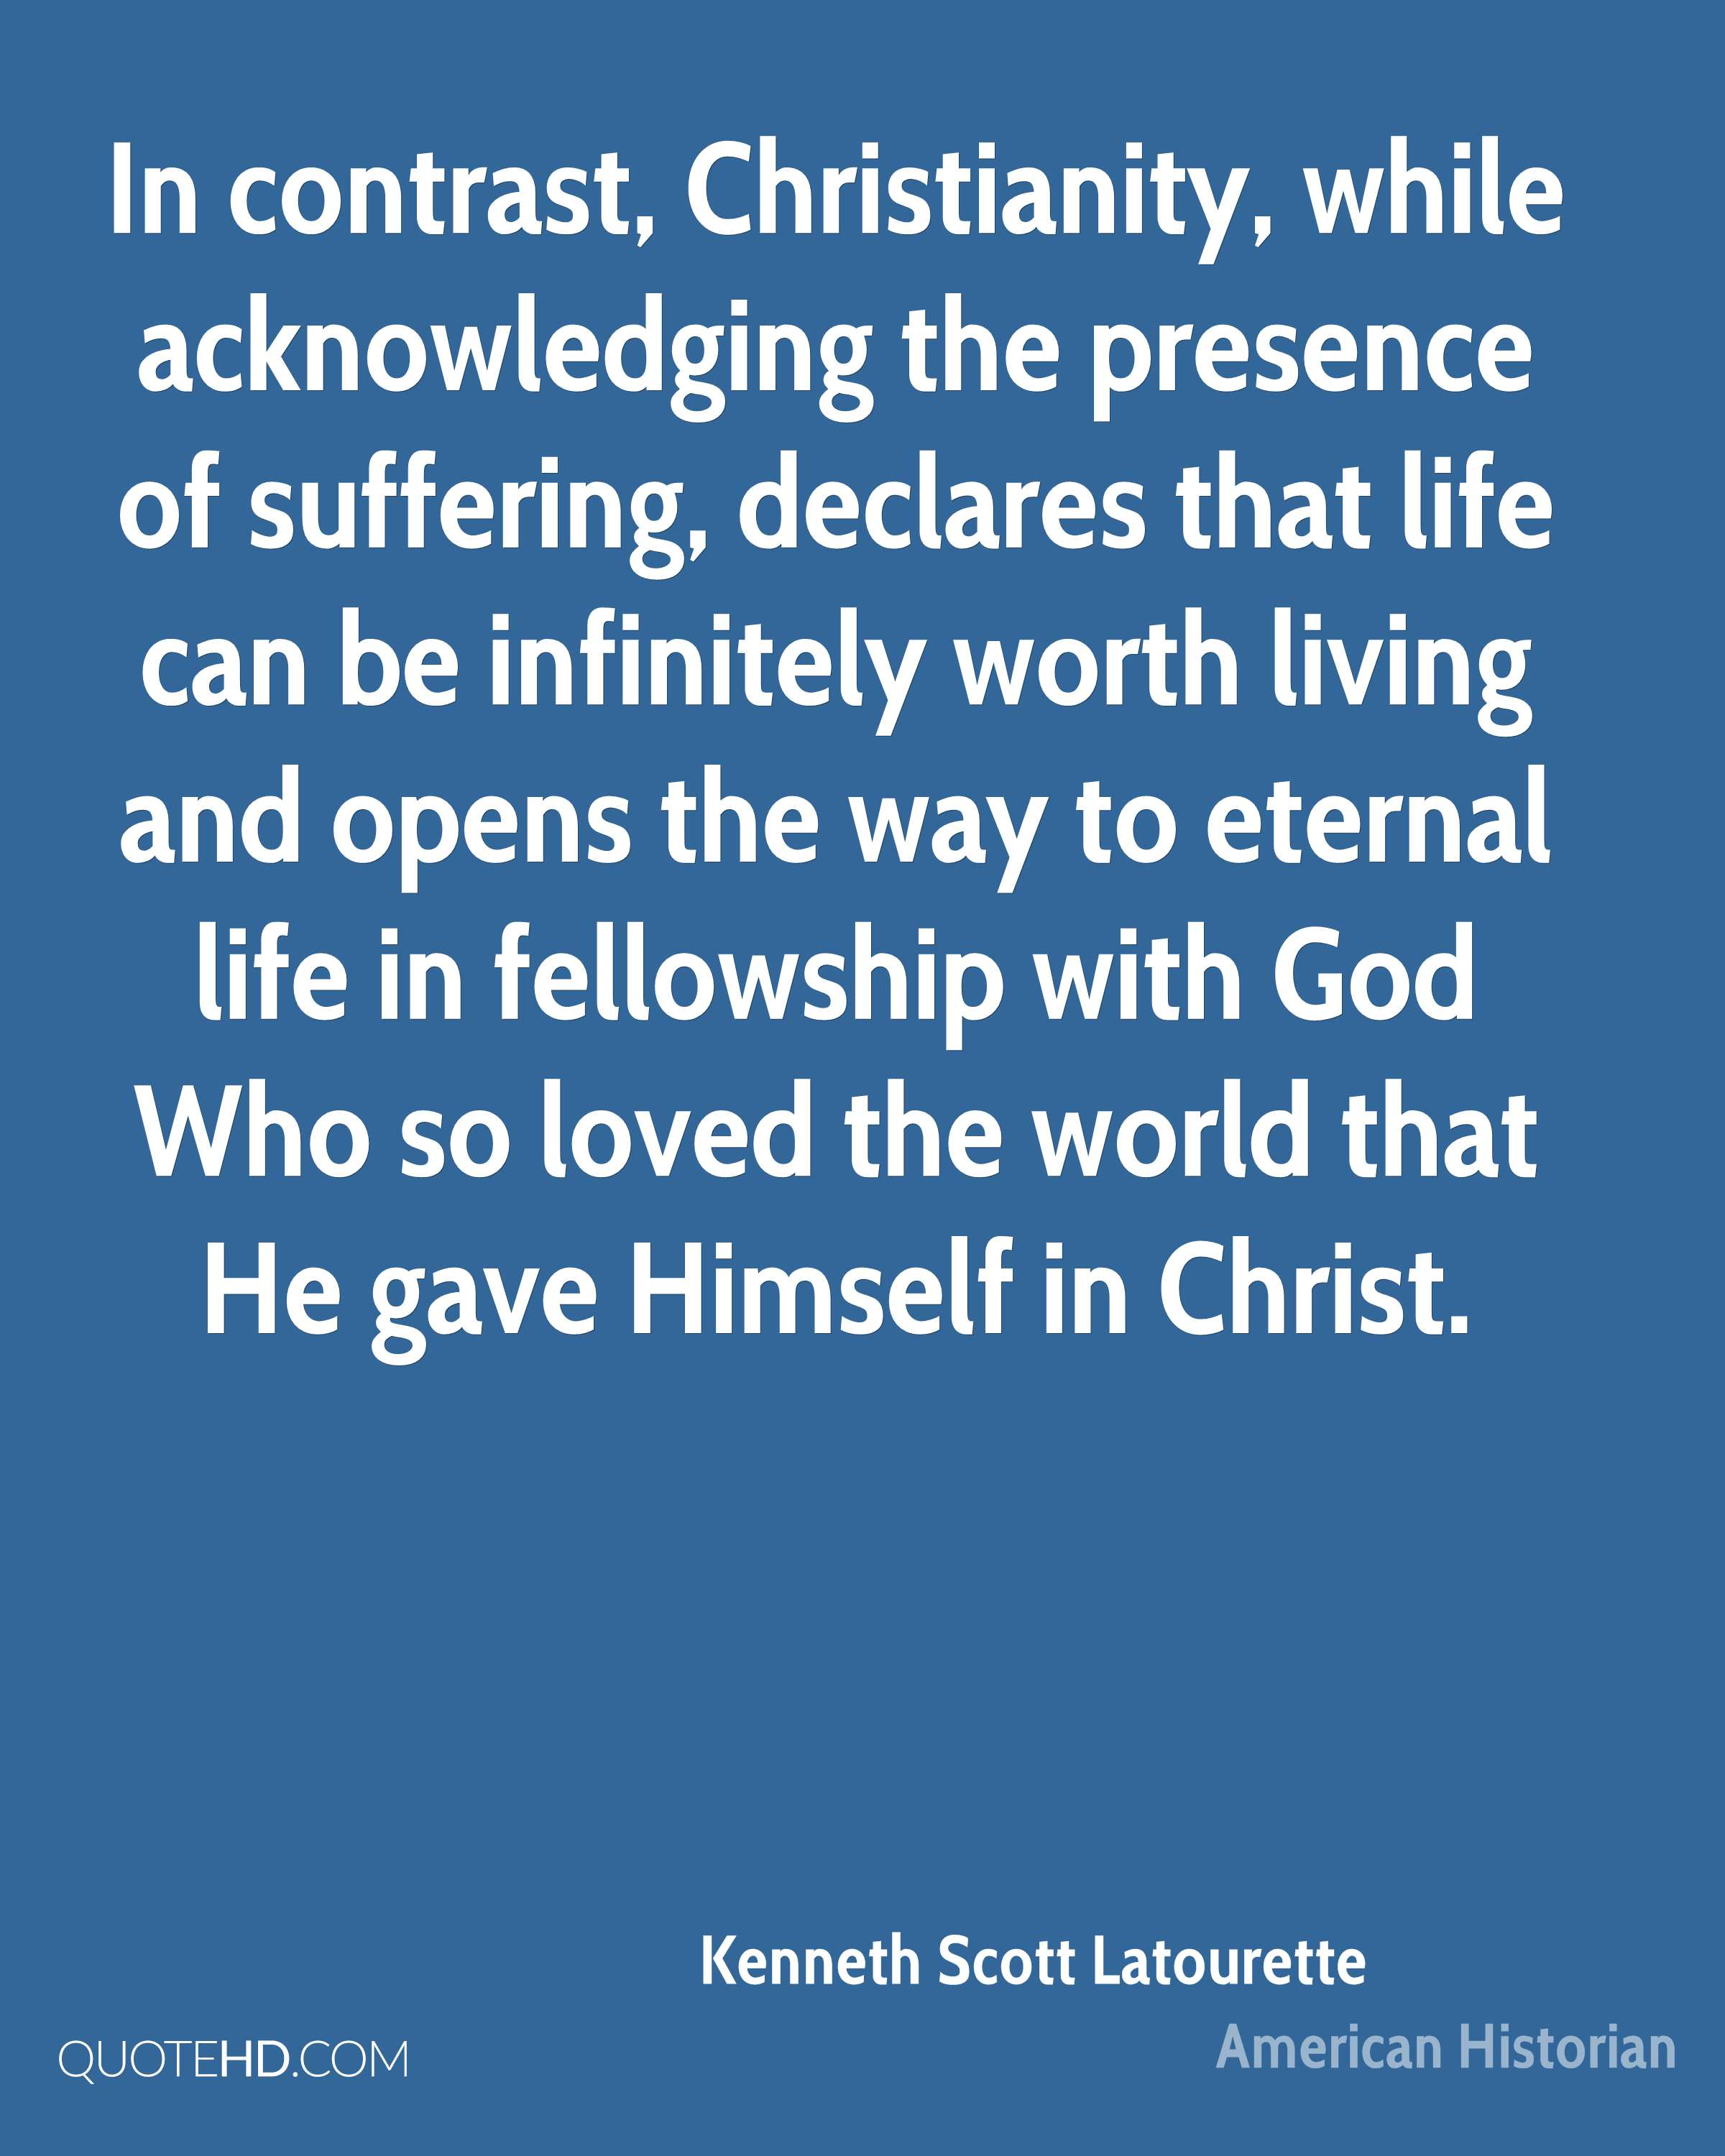 In contrast, Christianity, while acknowledging the presence of suffering, declares that life can be infinitely worth living and opens the way to eternal life in fellowship with God Who so loved the world that He gave Himself in Christ.